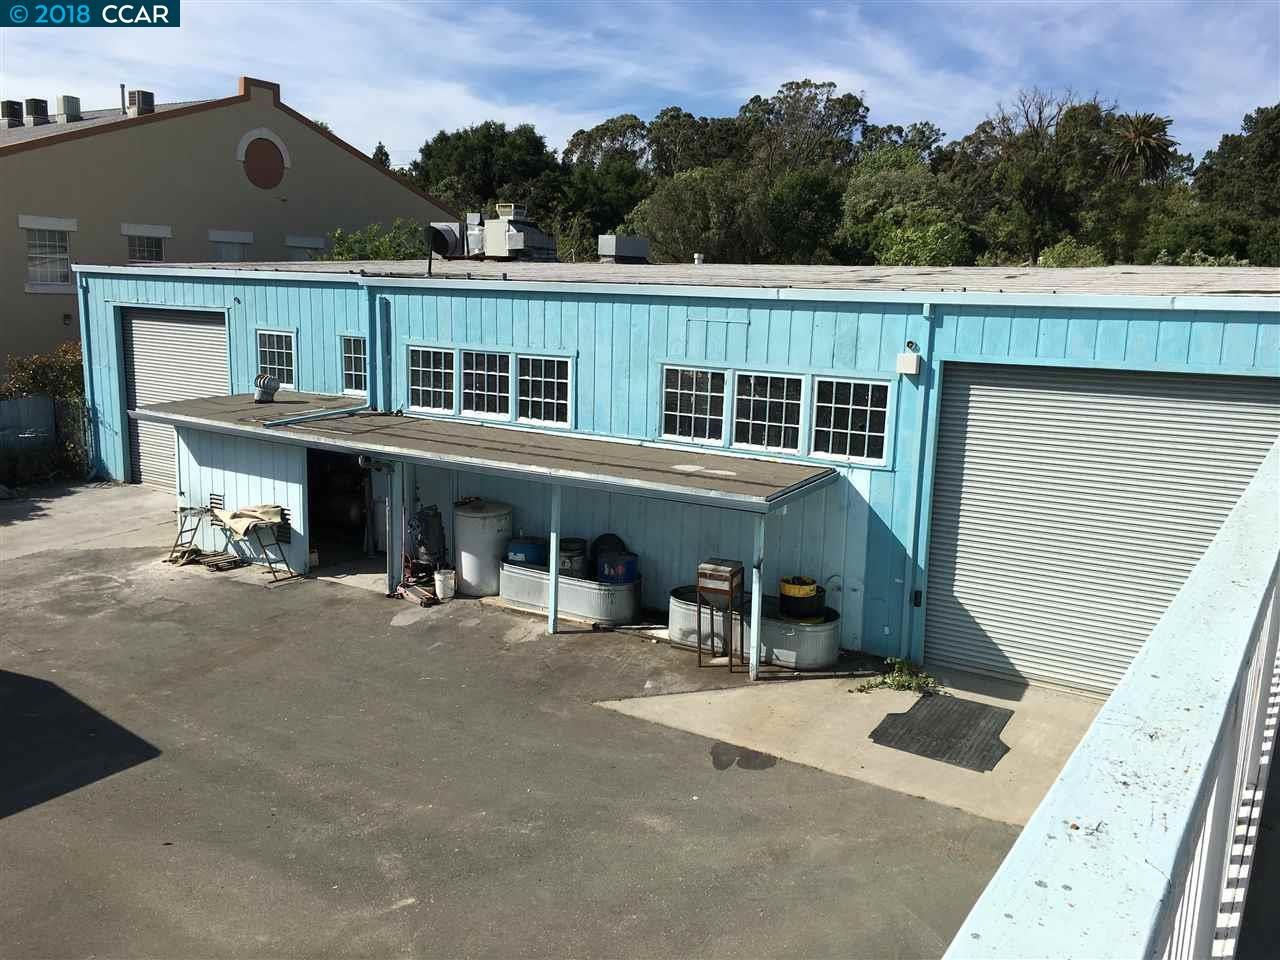 Additional photo for property listing at 980 Adams Street 980 Adams Street Benicia, カリフォルニア 94510 アメリカ合衆国